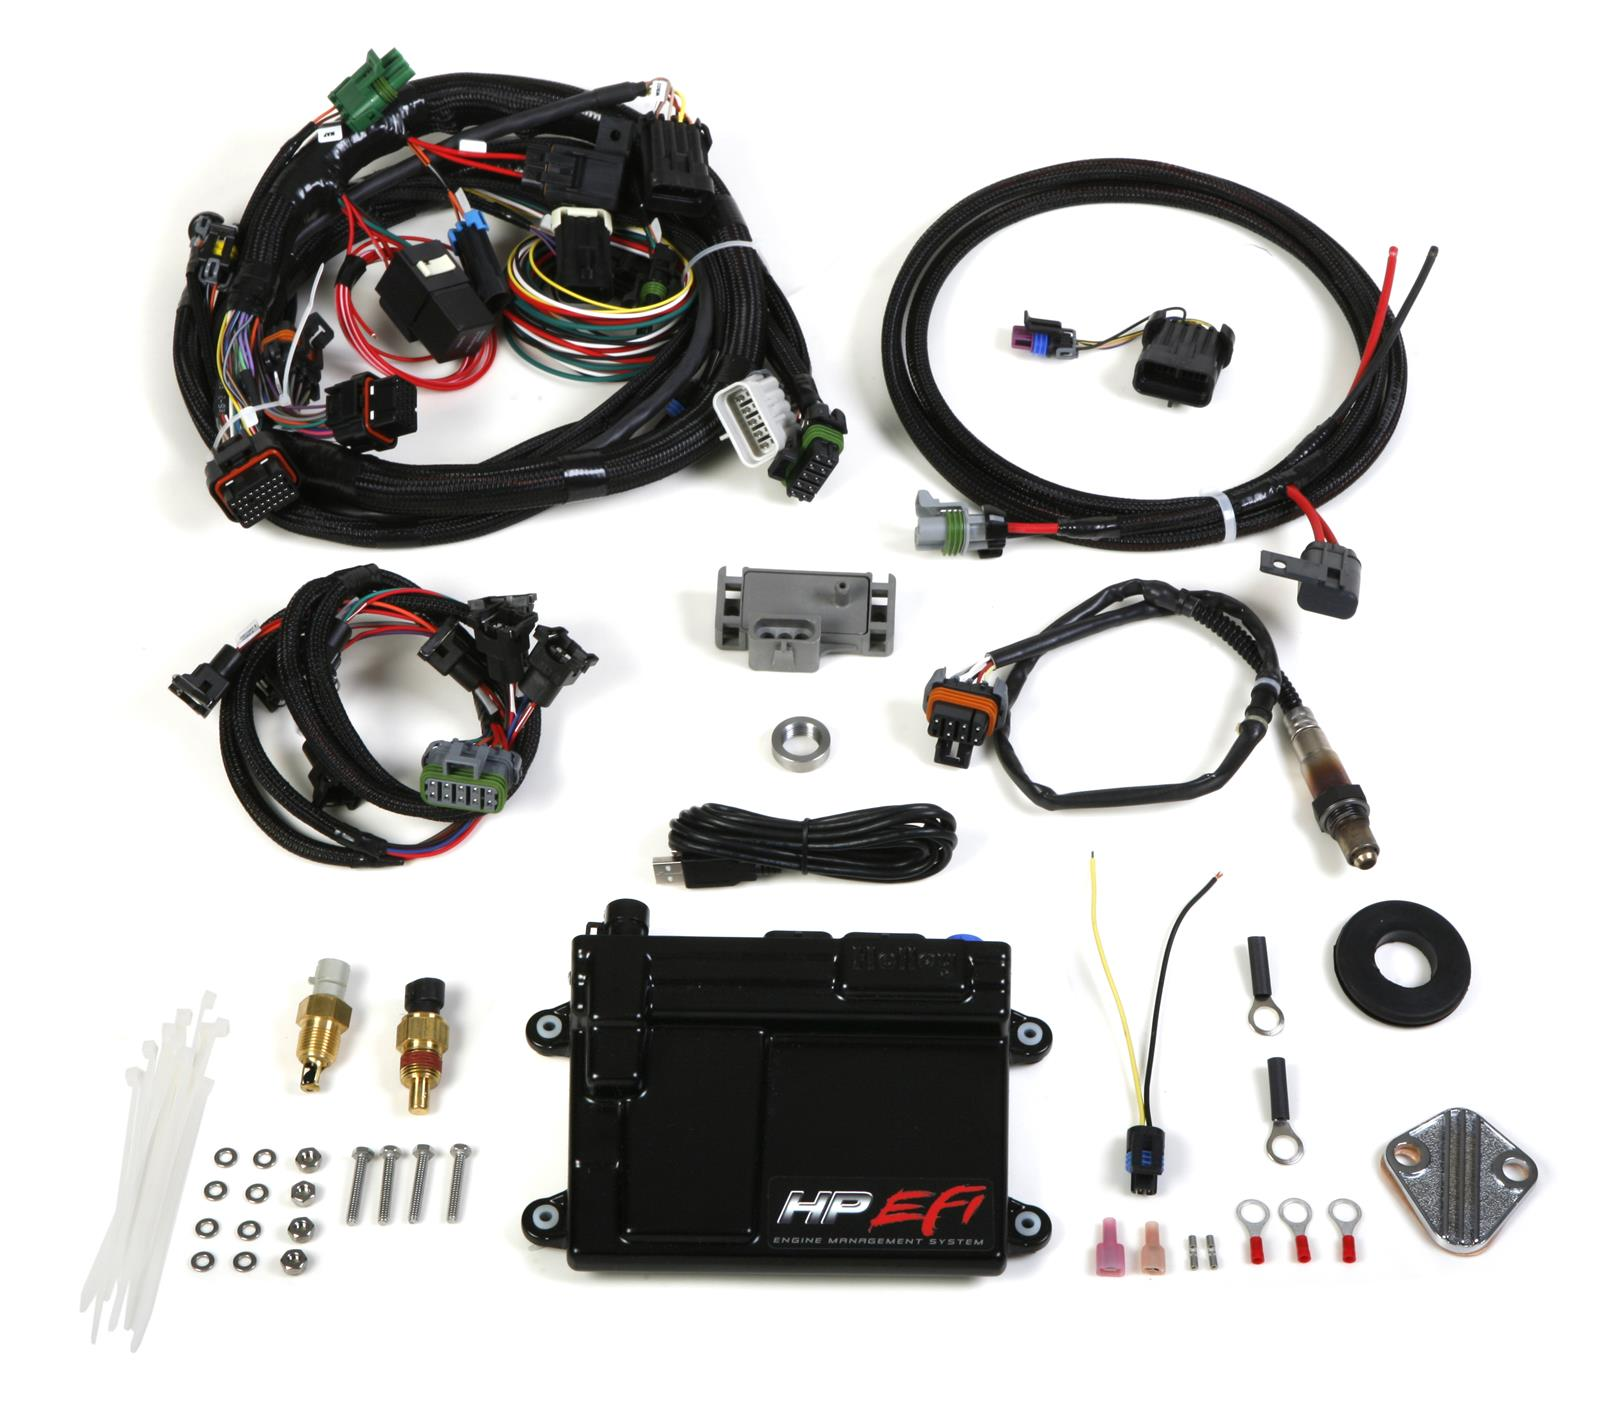 Fog Light Harness Kit Holley Hp Efi Ecu And Kits 550 601 Free Shipping On Orders Over 99 At Summit Racing